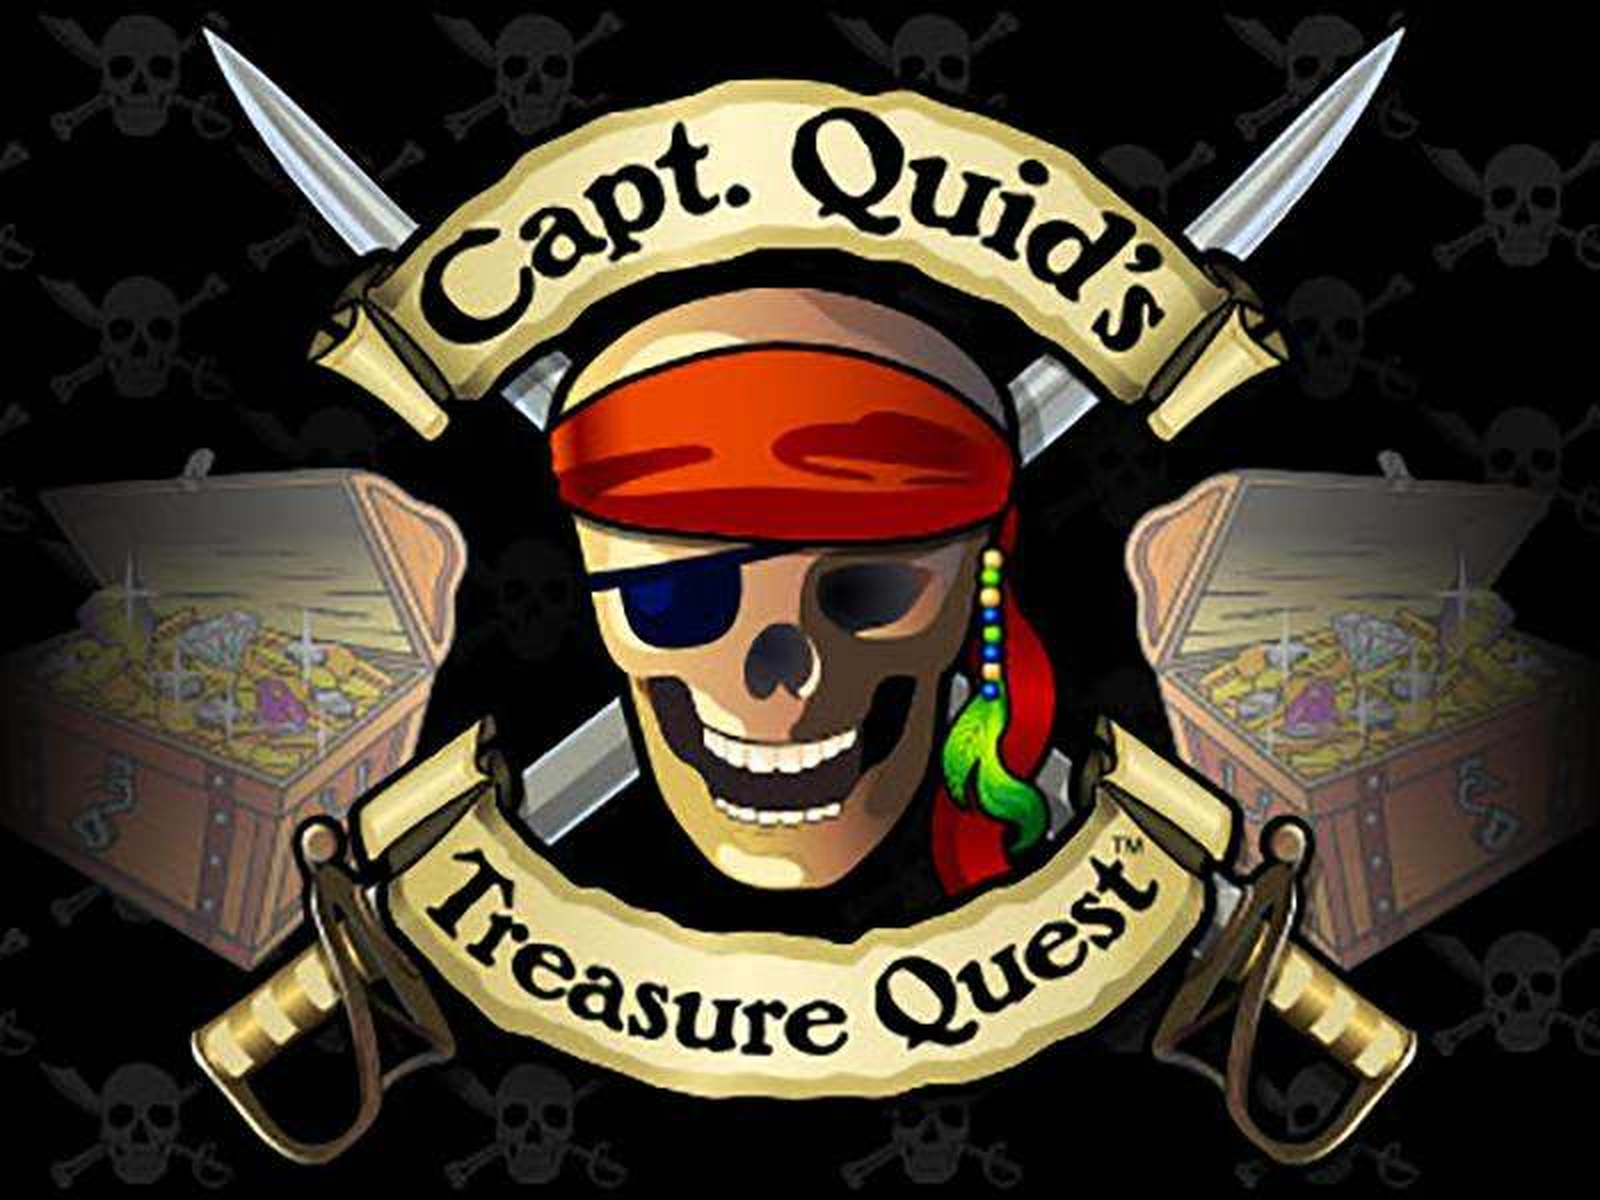 Se Captain Quids Treasure Quest Online Slot Demo Game, IGT